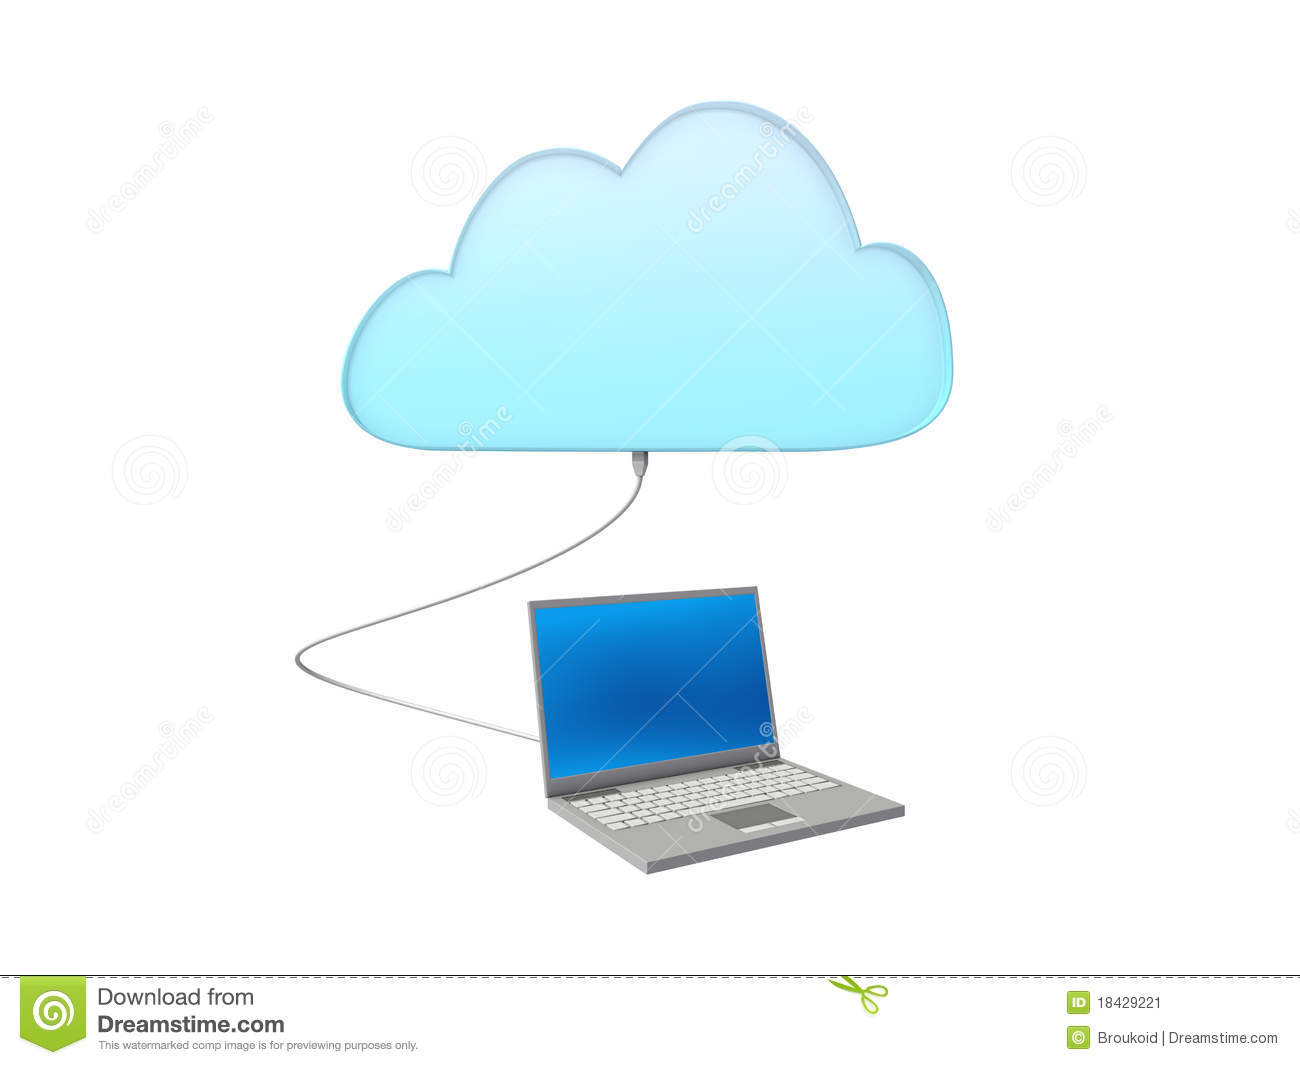 how to get into cloud computing